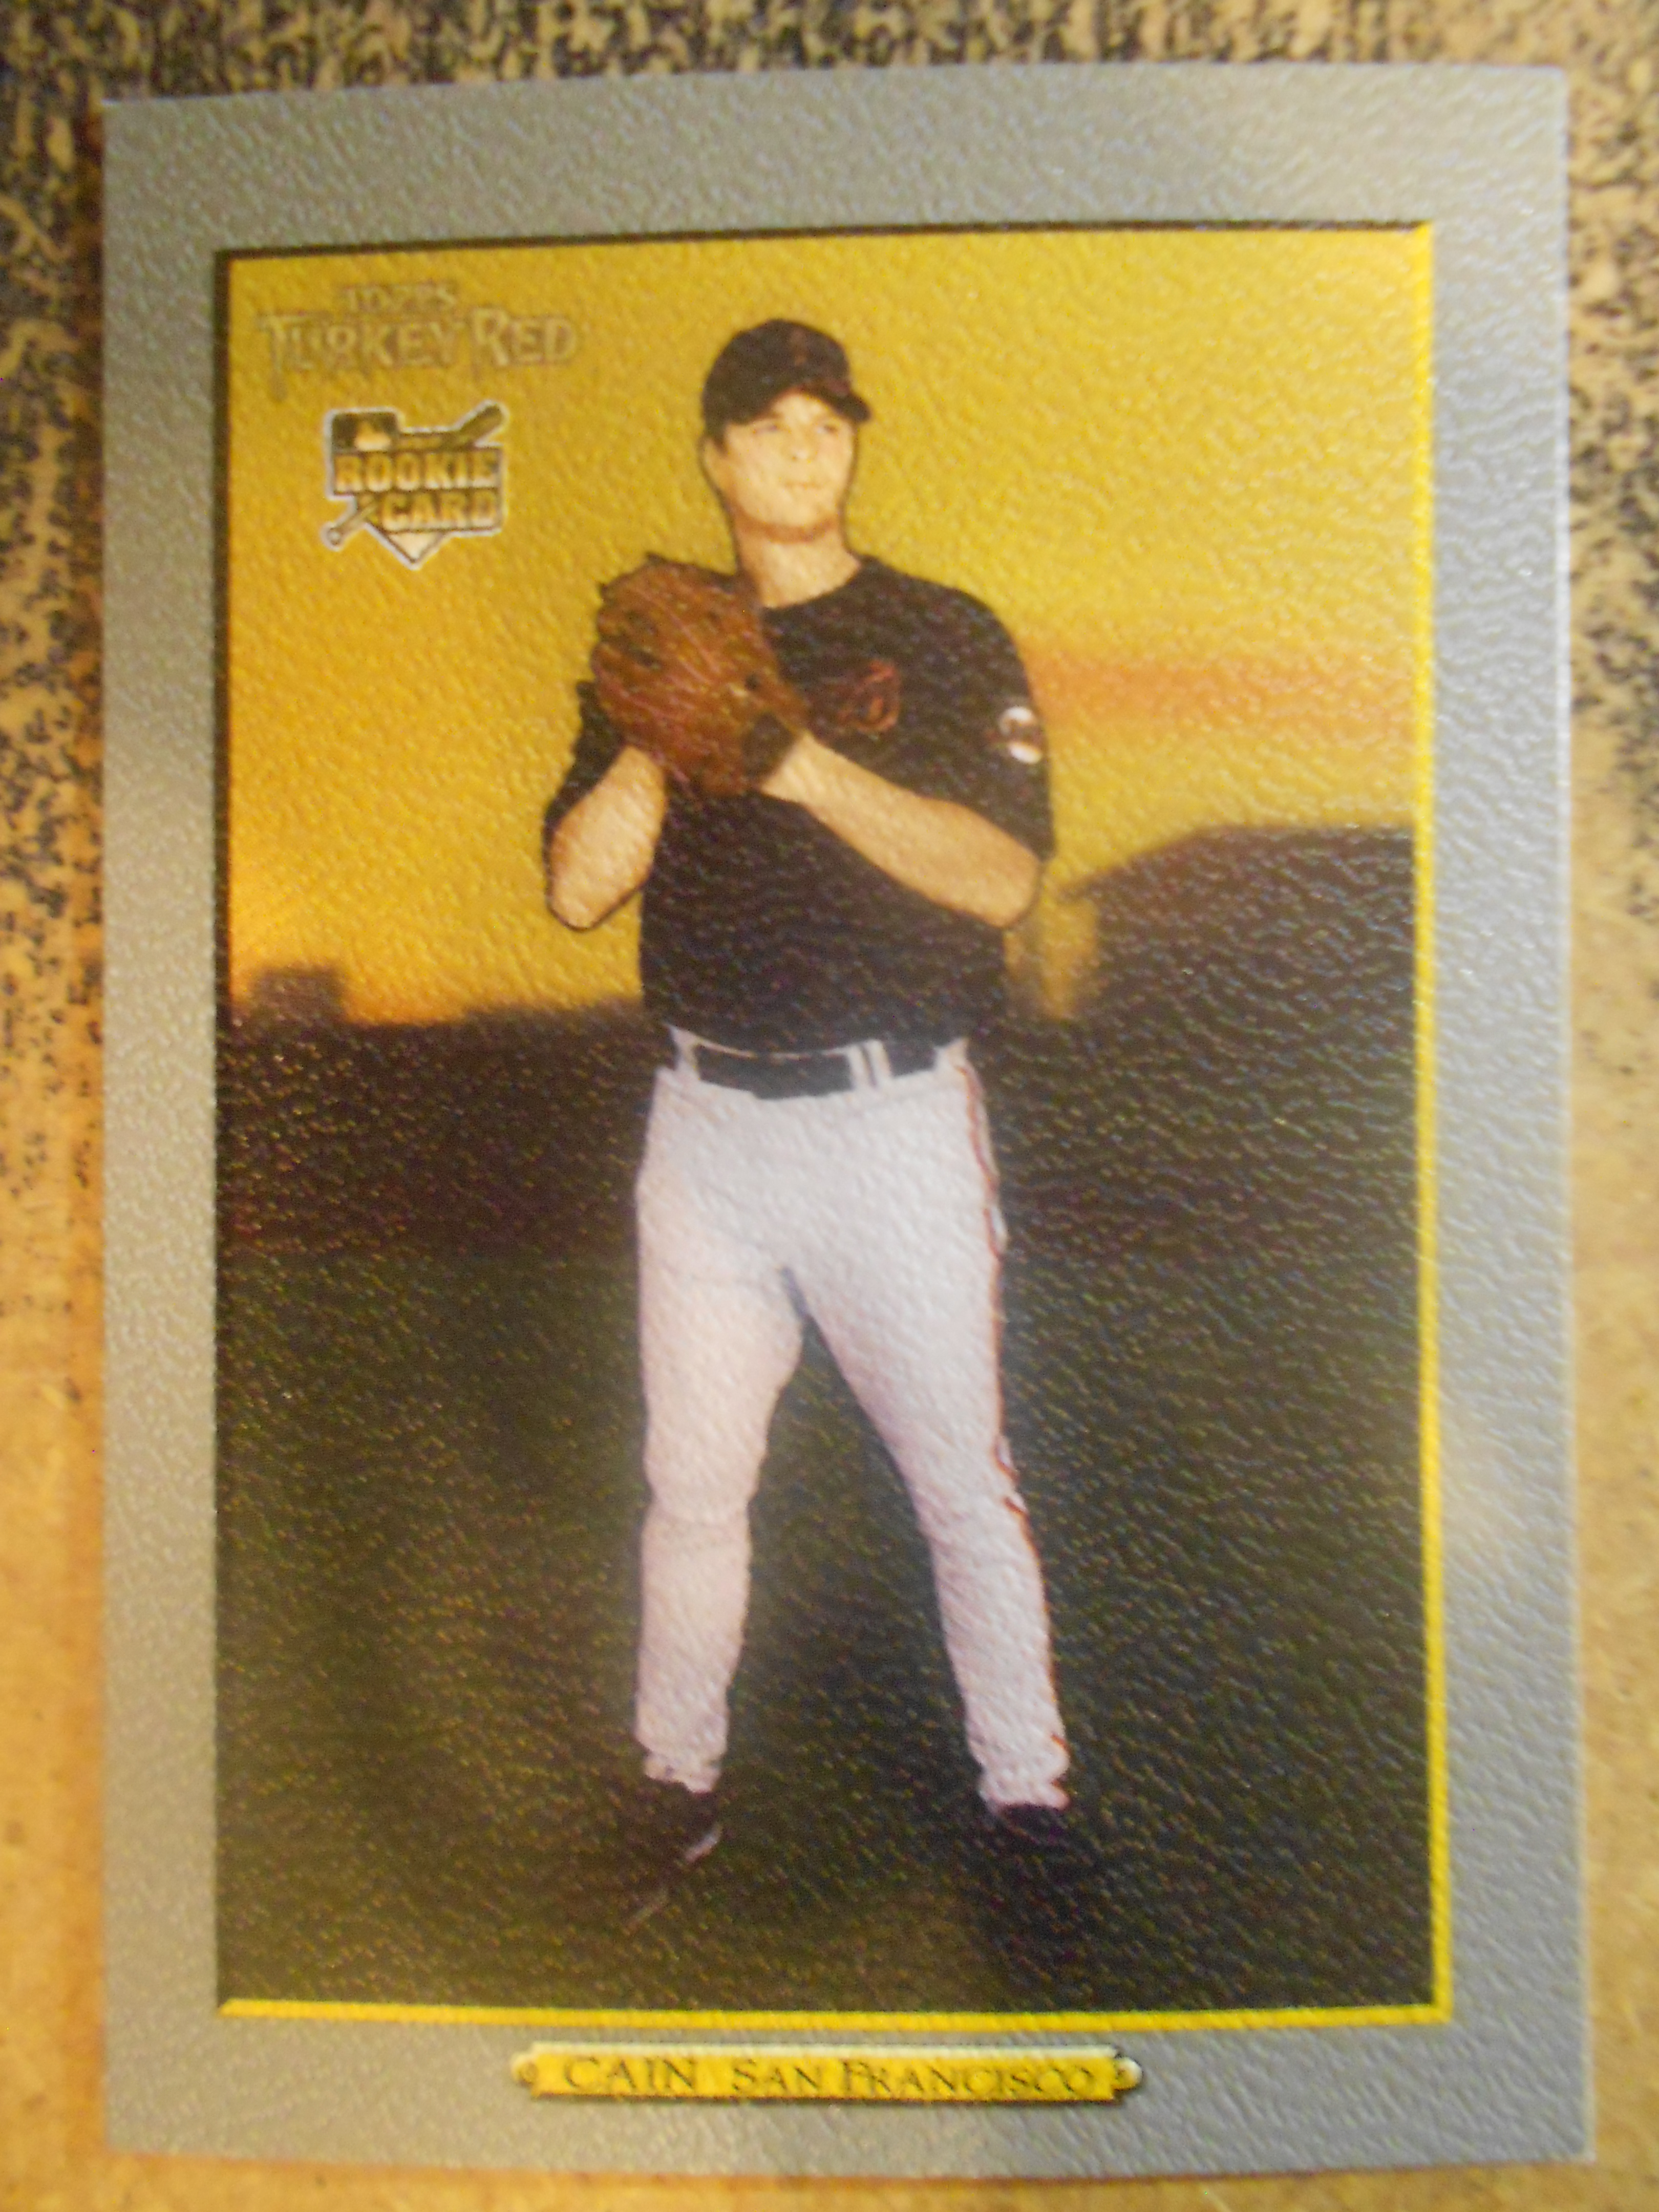 2006 Topps Turkey Red #609 Matt Cain (RC) front image